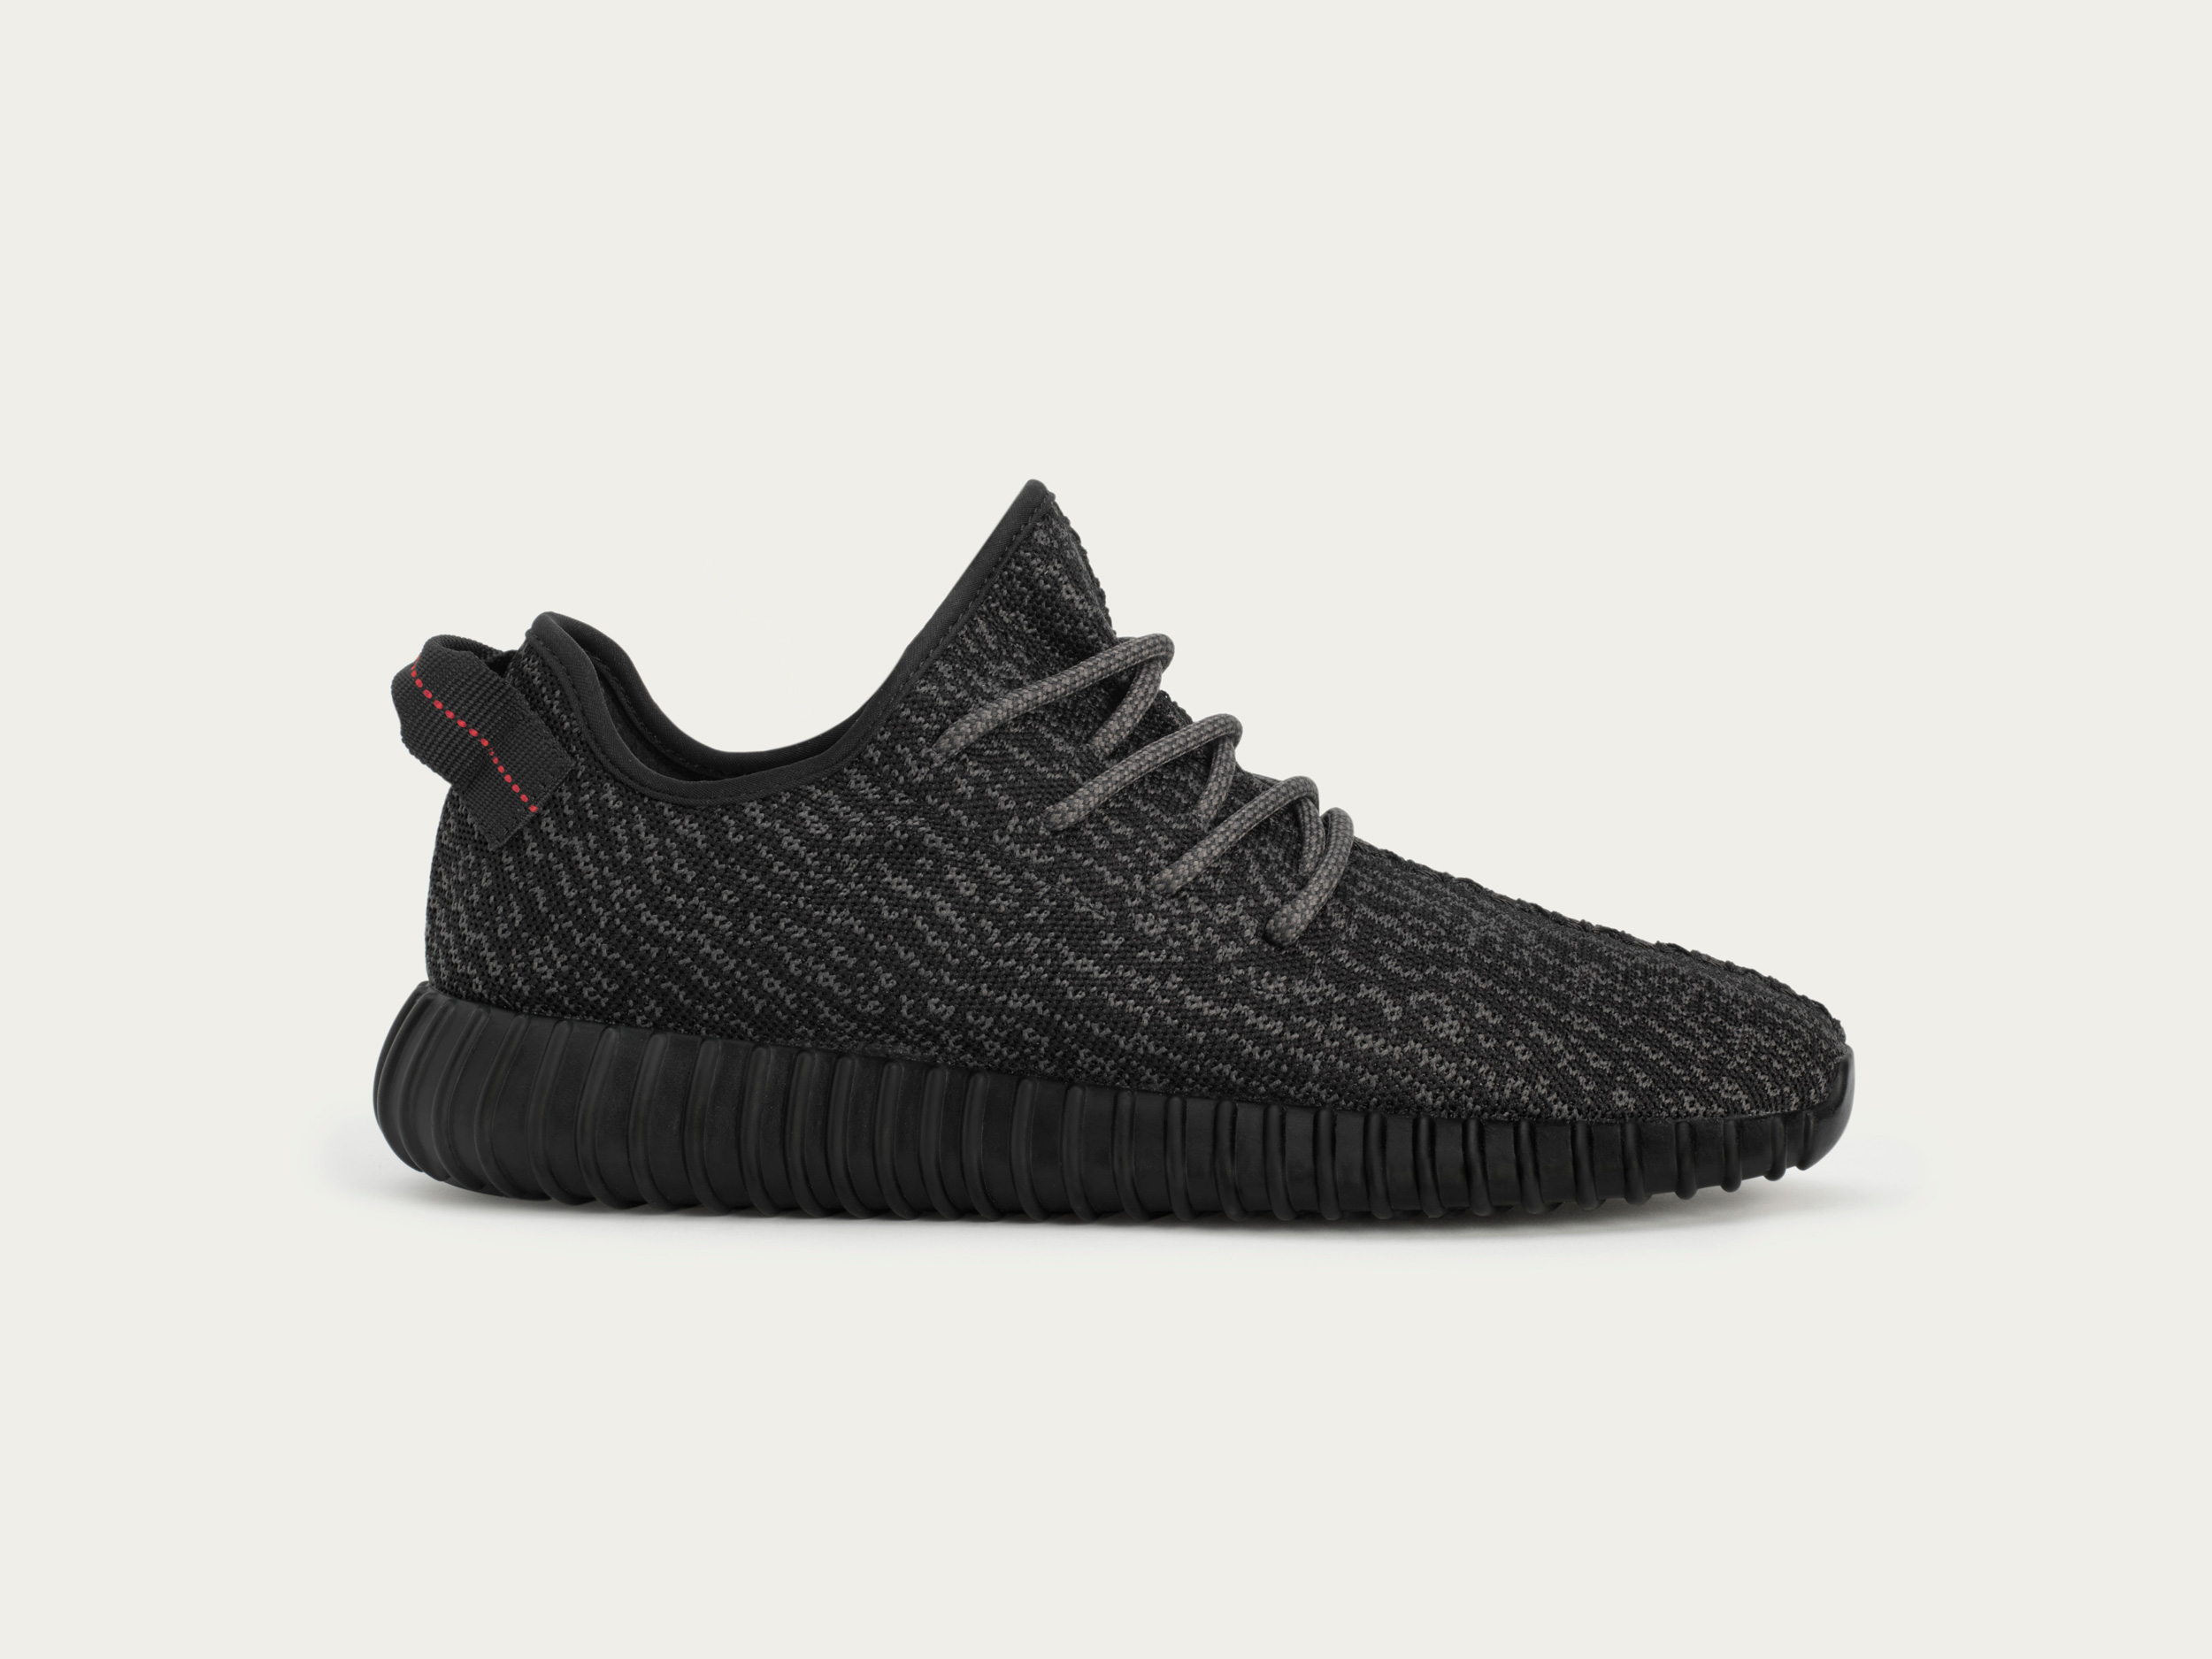 pirate-black-yeezy